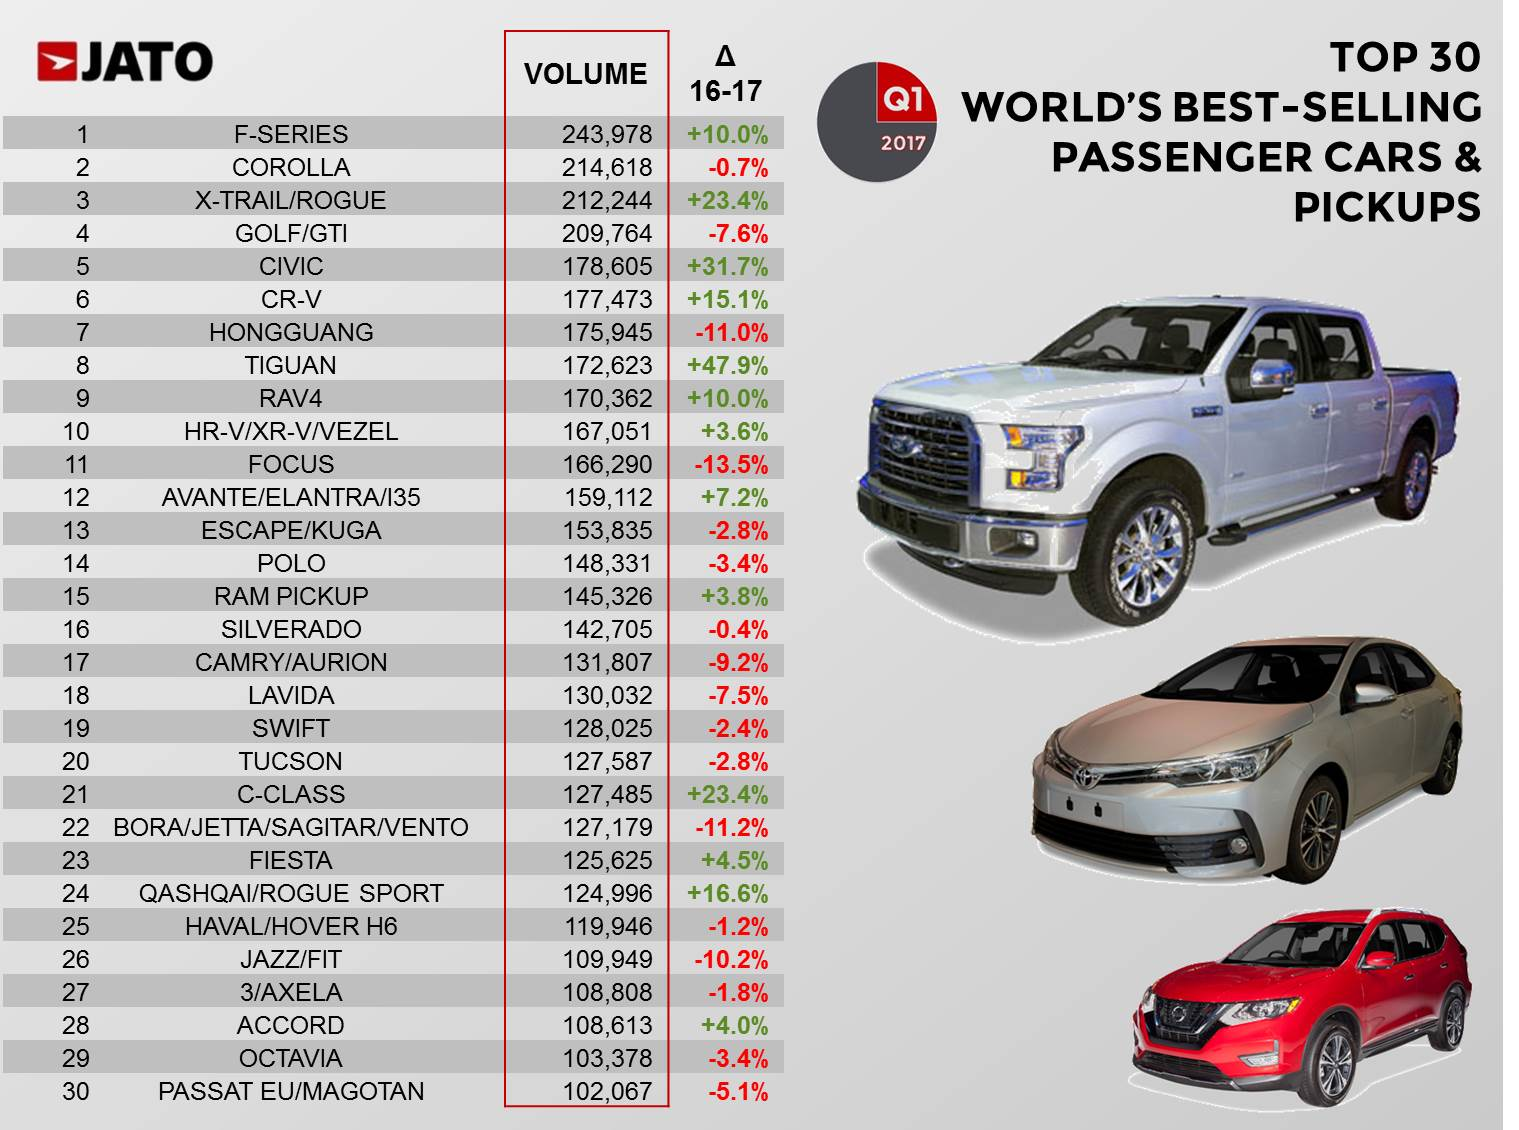 Car Manufacturers By Sales 2018 Mail: Global Vehicle Sales Up By 4.7% In Q1-17 With Renault